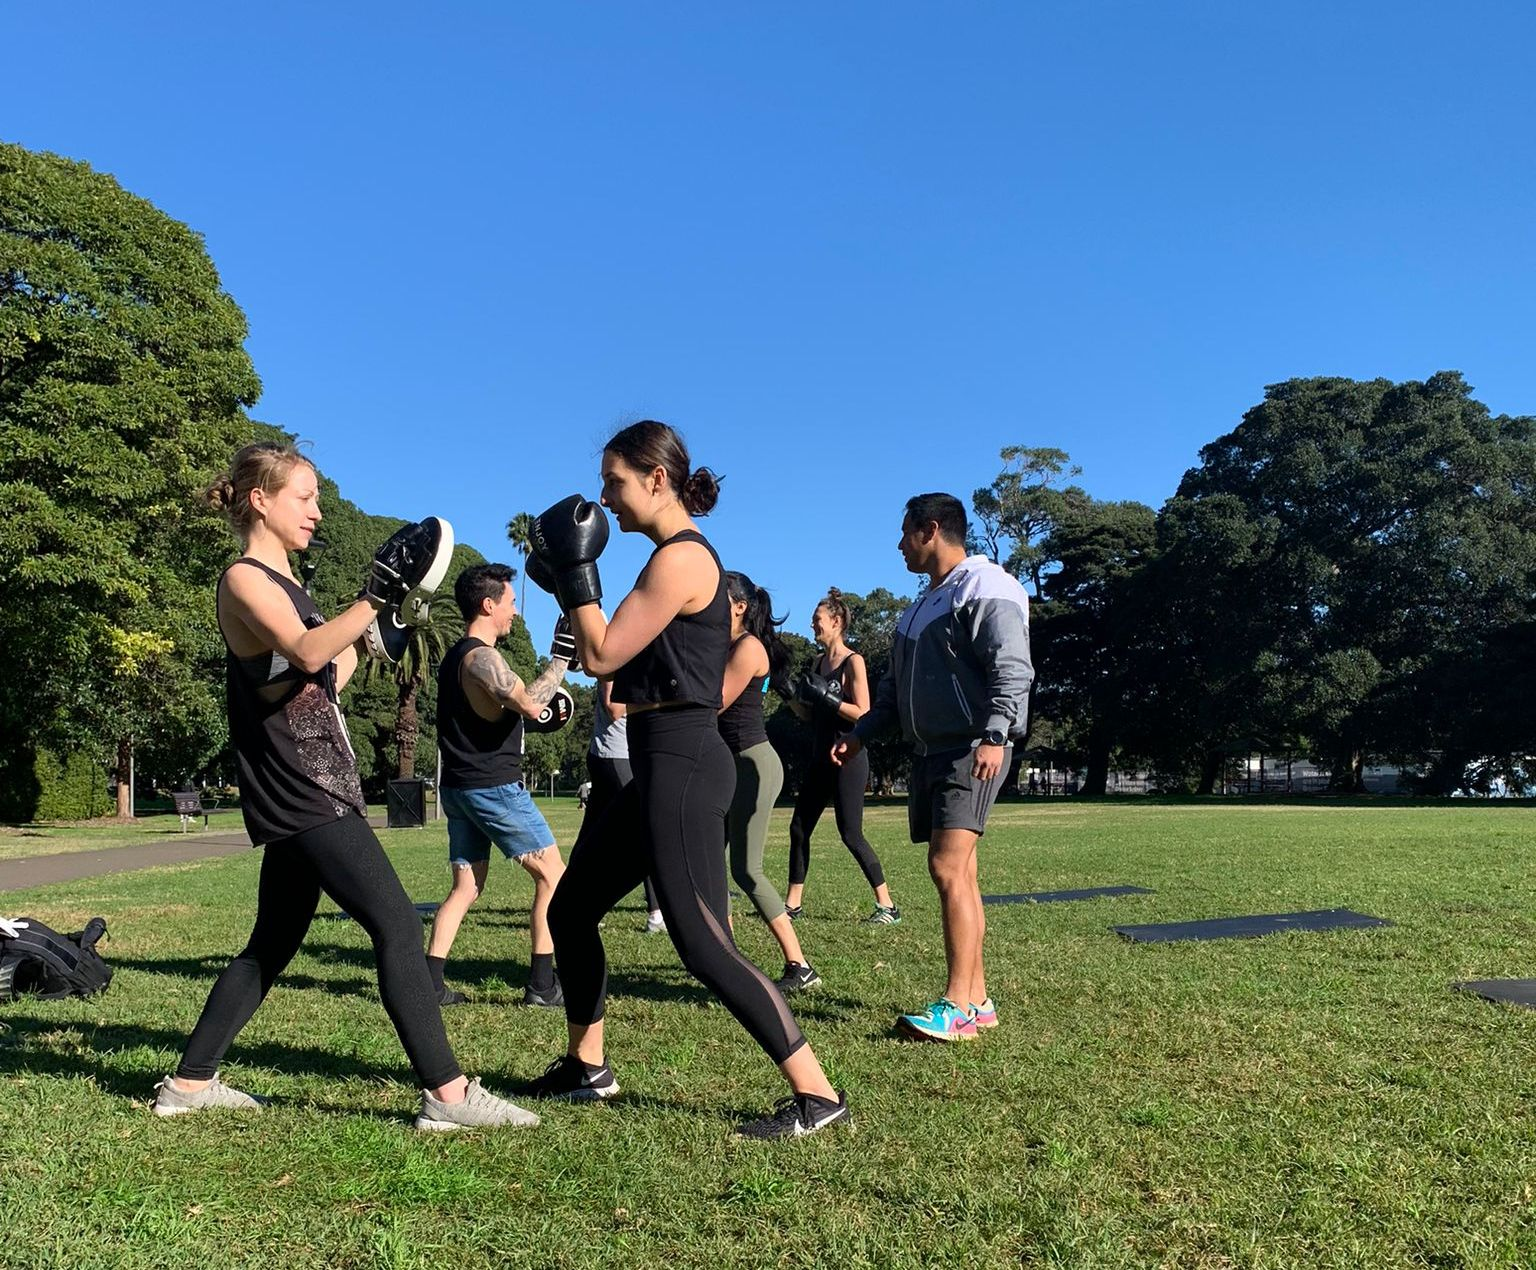 outdoor boxing class hiitboxing